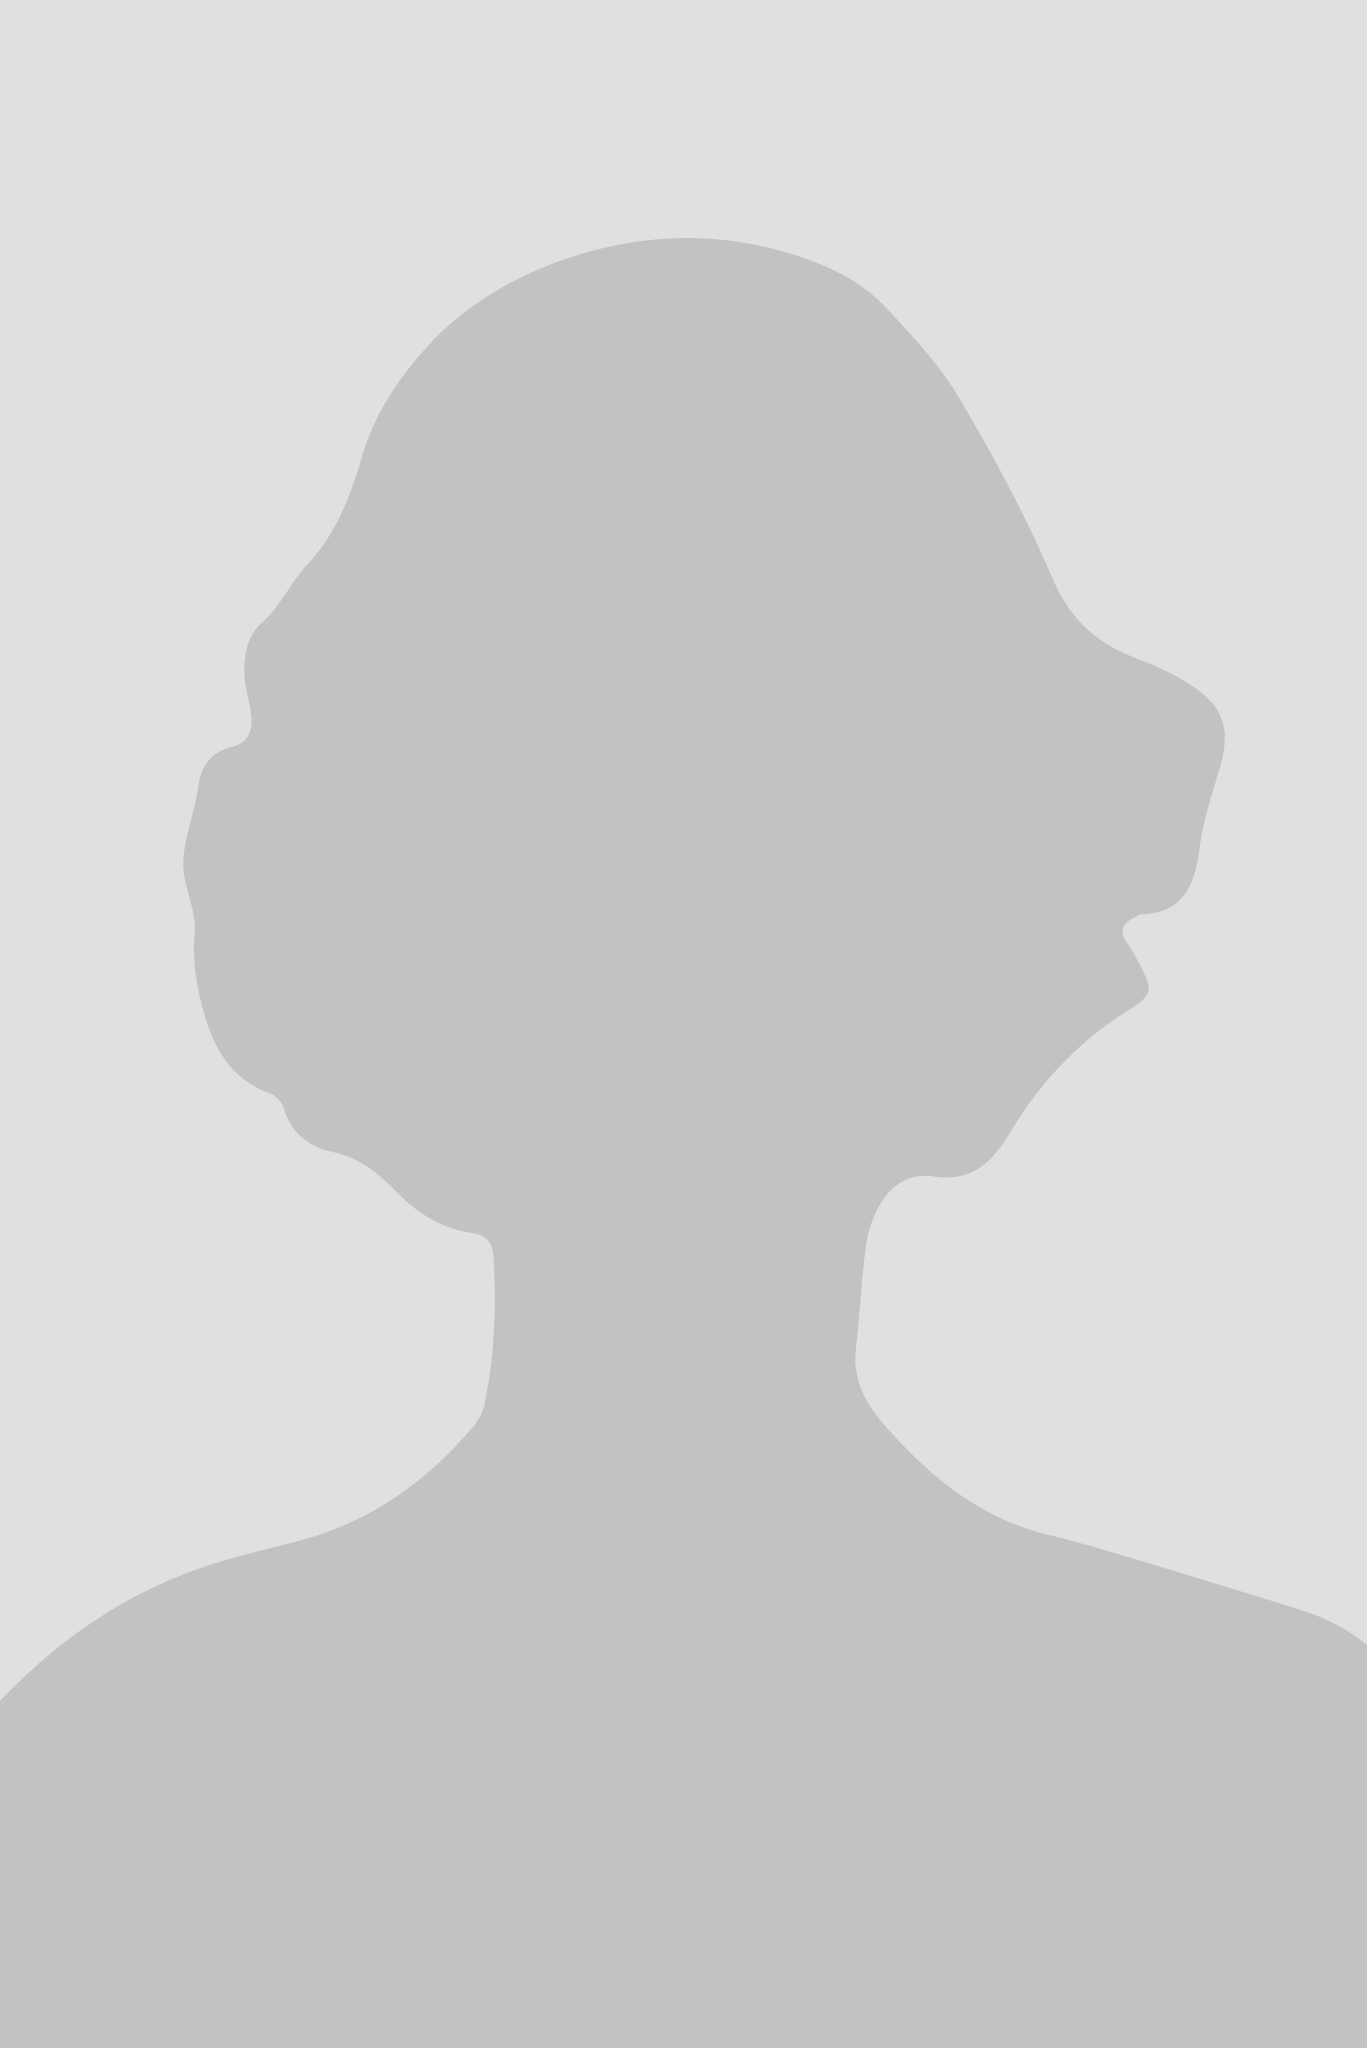 Blank Profile Photo of a Female